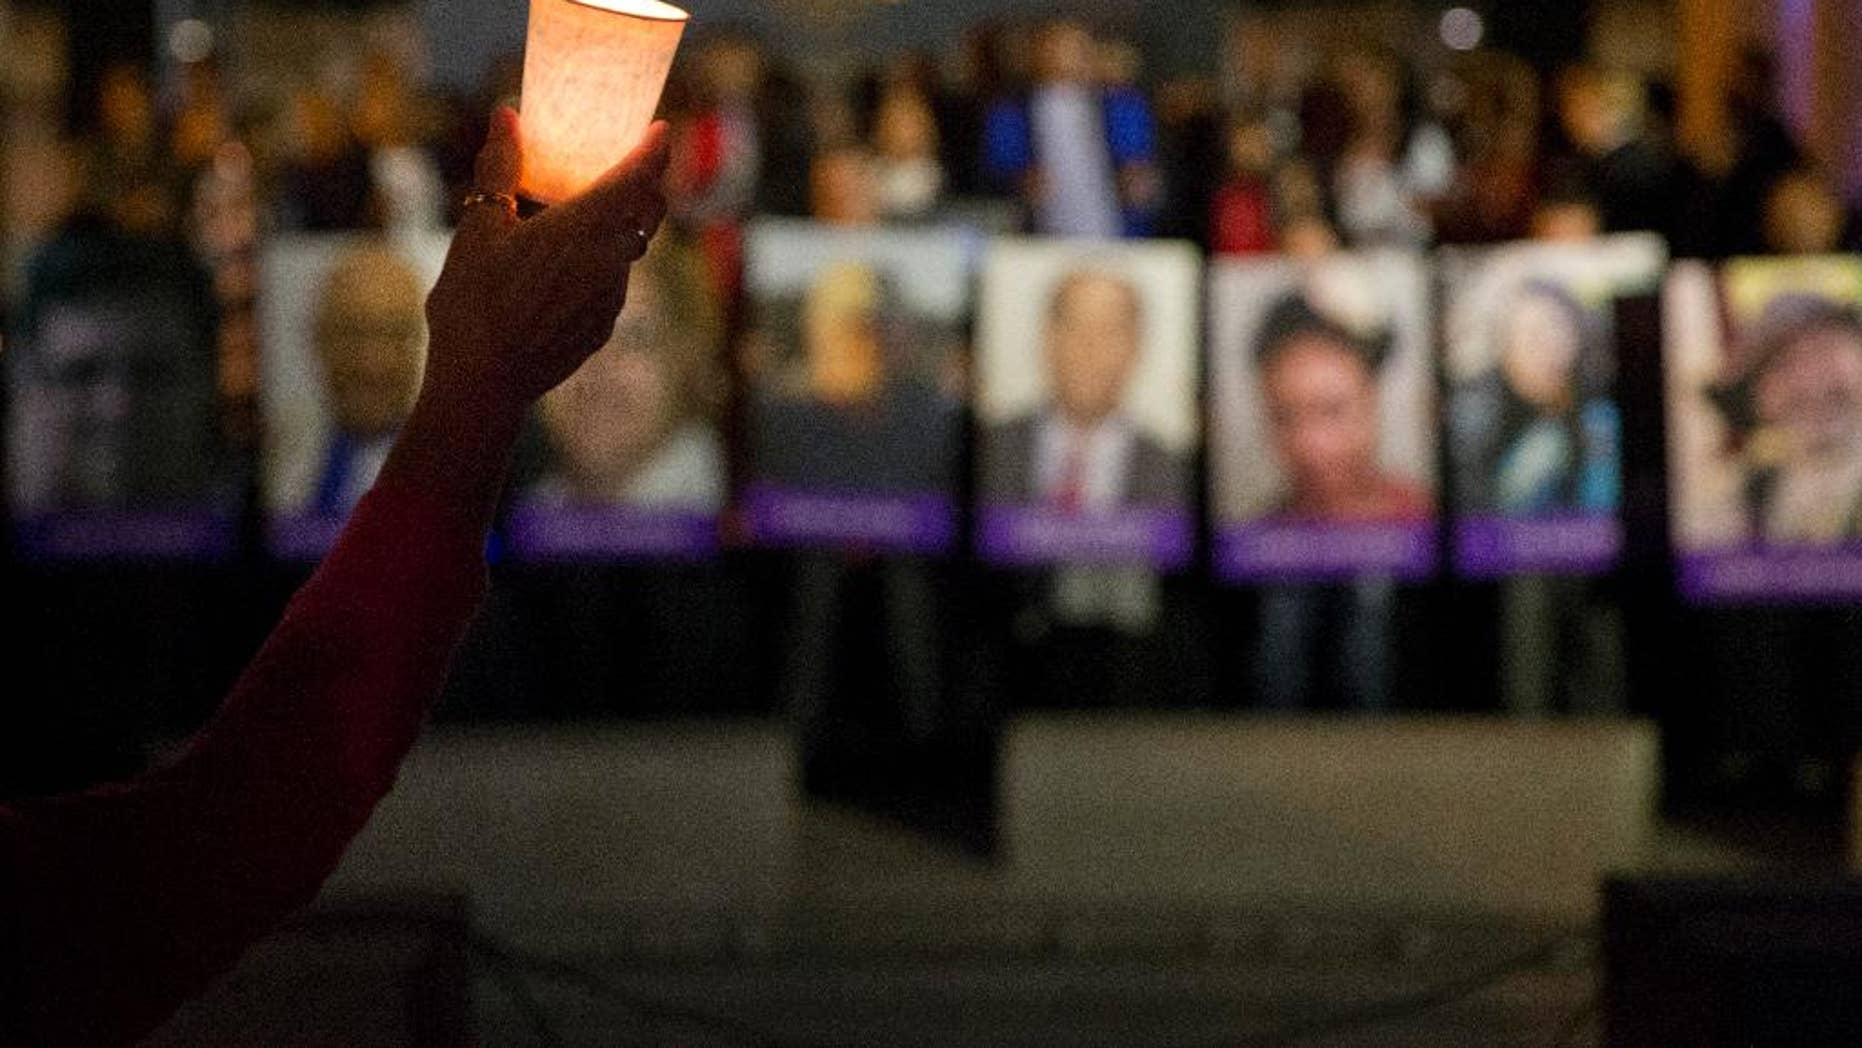 FILE - In this Dec. 7, 2015, file photo, Arlene Payan holds a candle during a vigil to honor shooting victims in San Bernardino, Calif. The shootings in San Bernardino are a reminder of how vulnerable workplaces can be. Companies have called security consultants, human resources providers and attorneys since the attack, seeking information about what to do if there's a shooter on their premises. Companies that already have plans in place are reviewing them to see what changes they need to make. (AP Photo/Jae C. Hong, File)